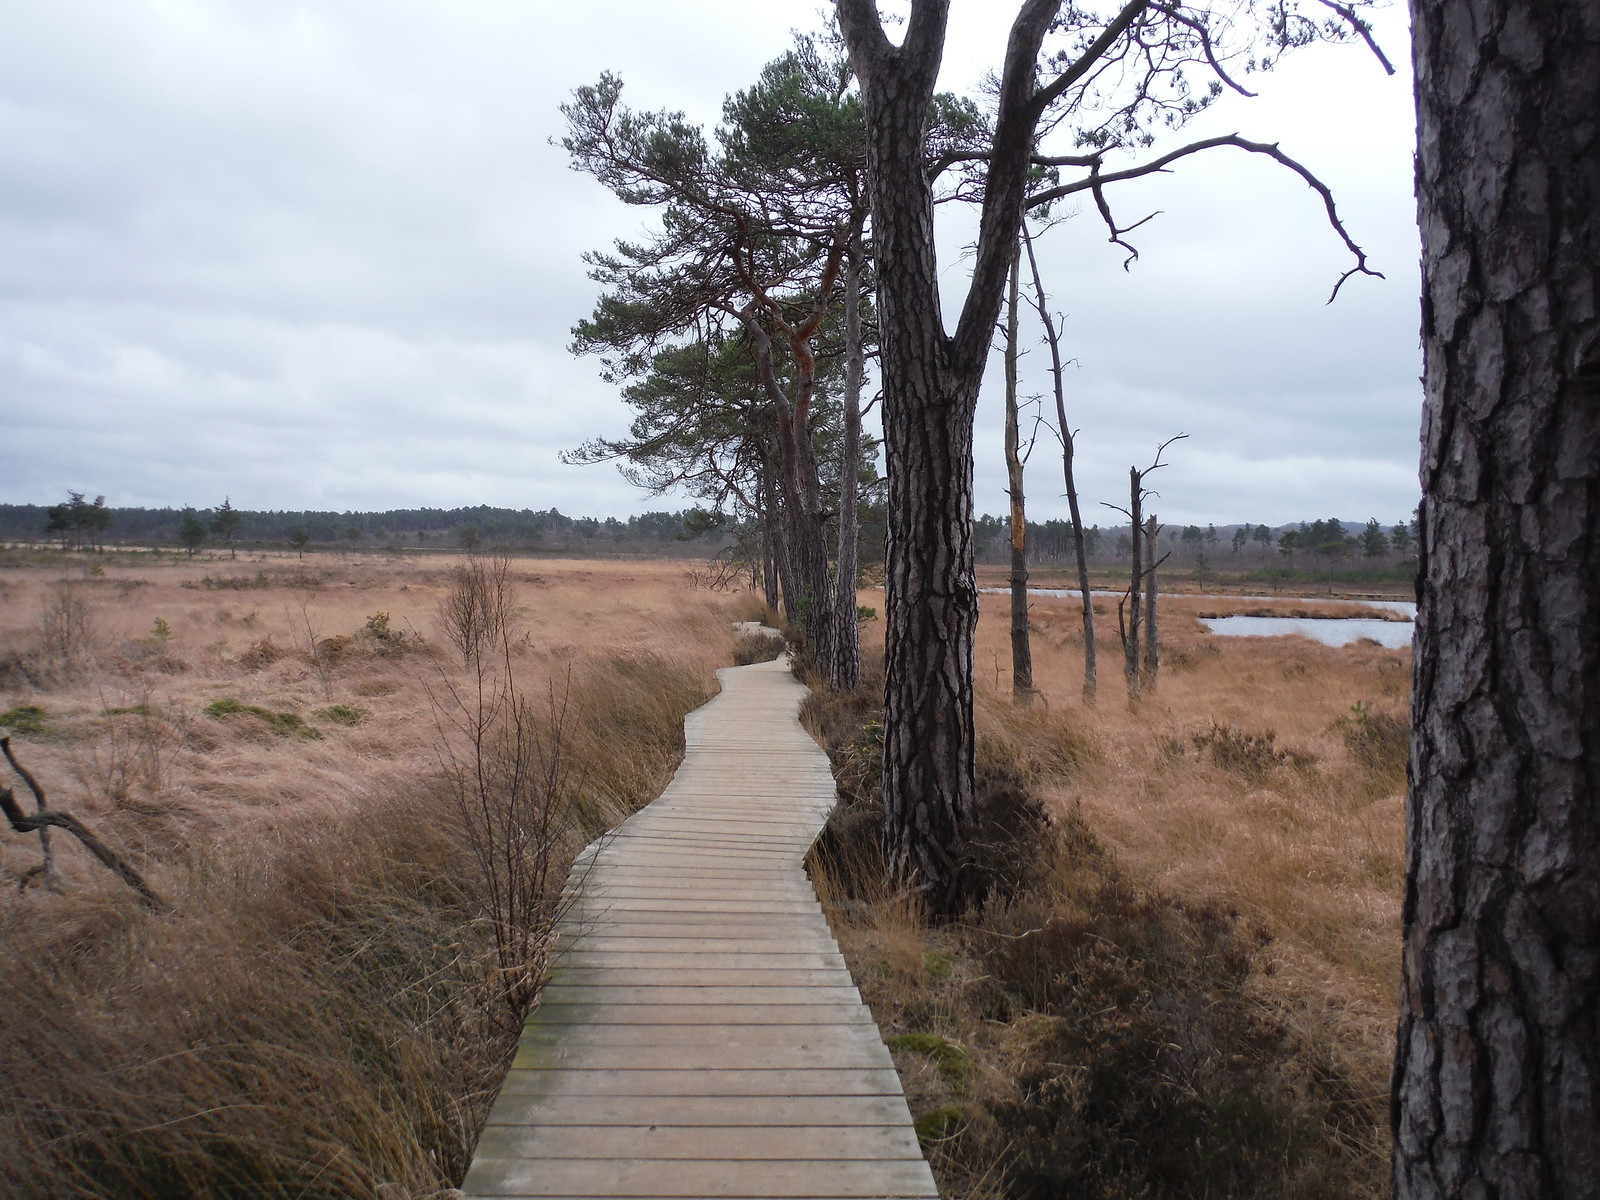 Boardwalk in Pudmore Pond Area,Thursley Common SWC Walk 144 Haslemere to Farnham - Thursley Common Extension (Pudmore Pond Extension-within-the-Extension)